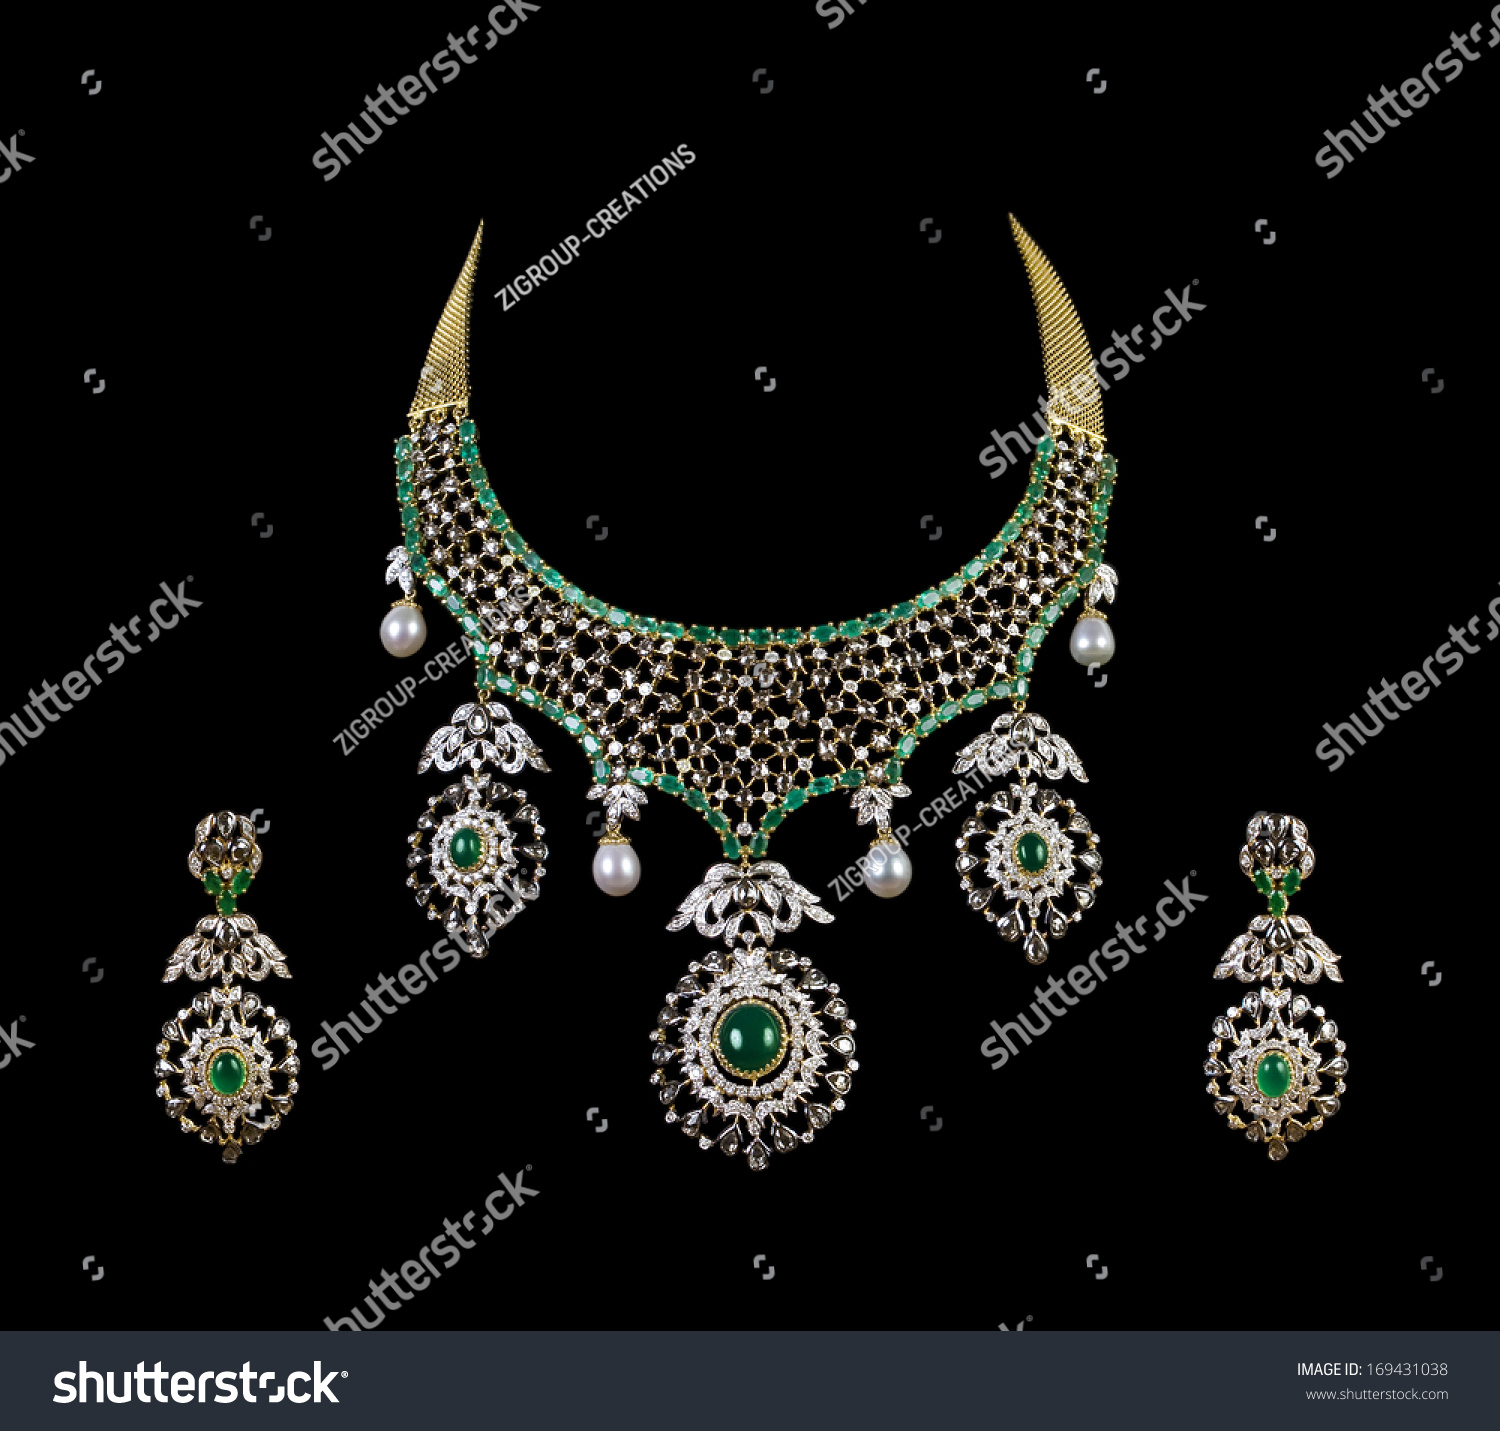 shiny royalty free stock image photo shutterstock diamond